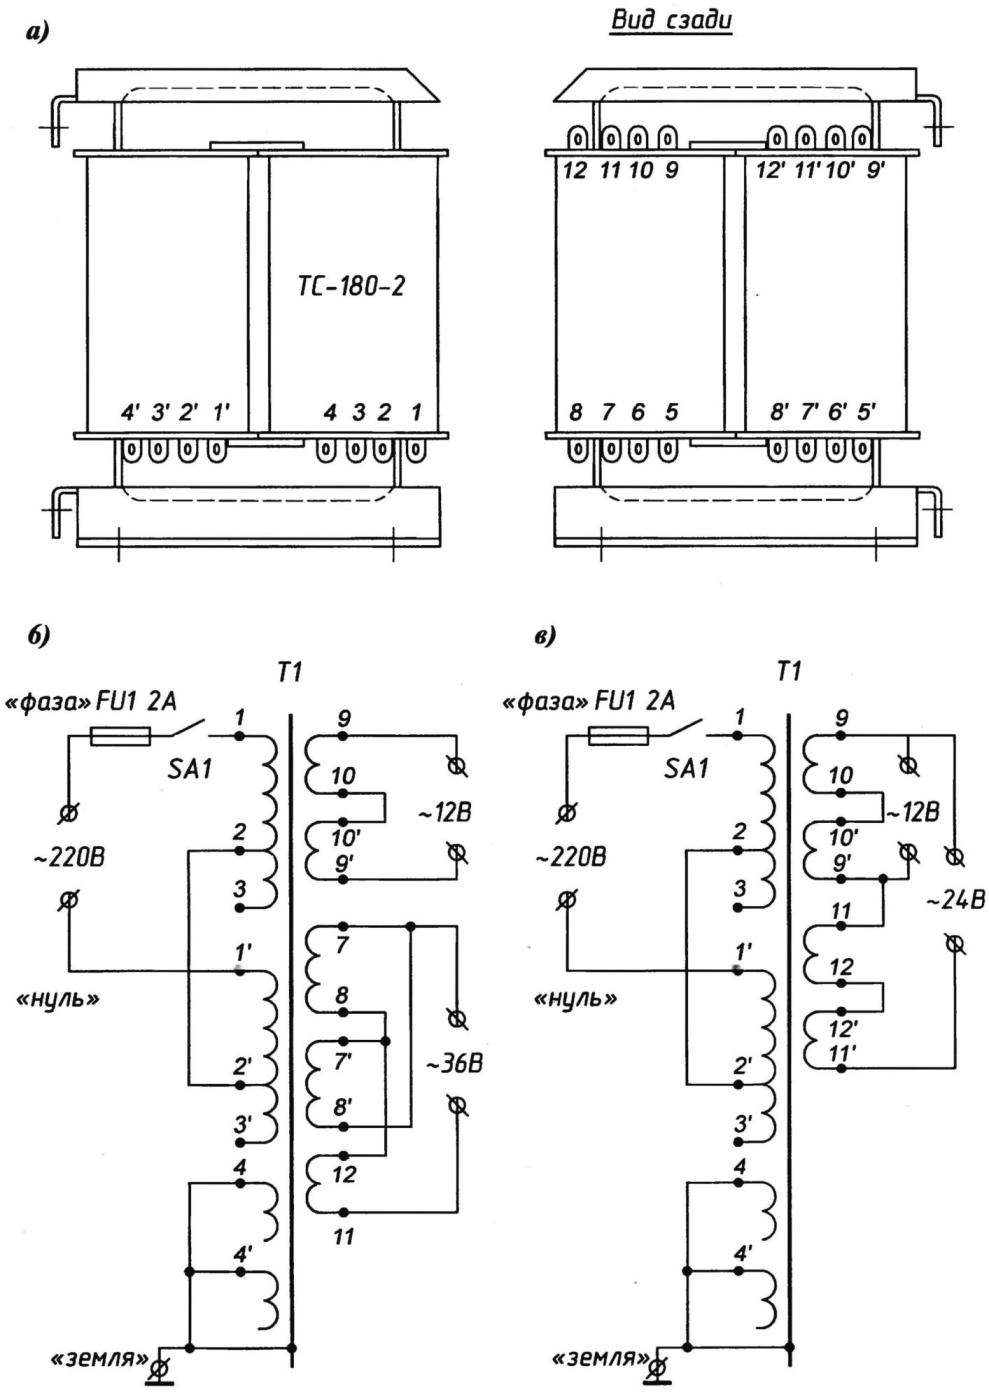 12 volt lighting transformer wiring diagram